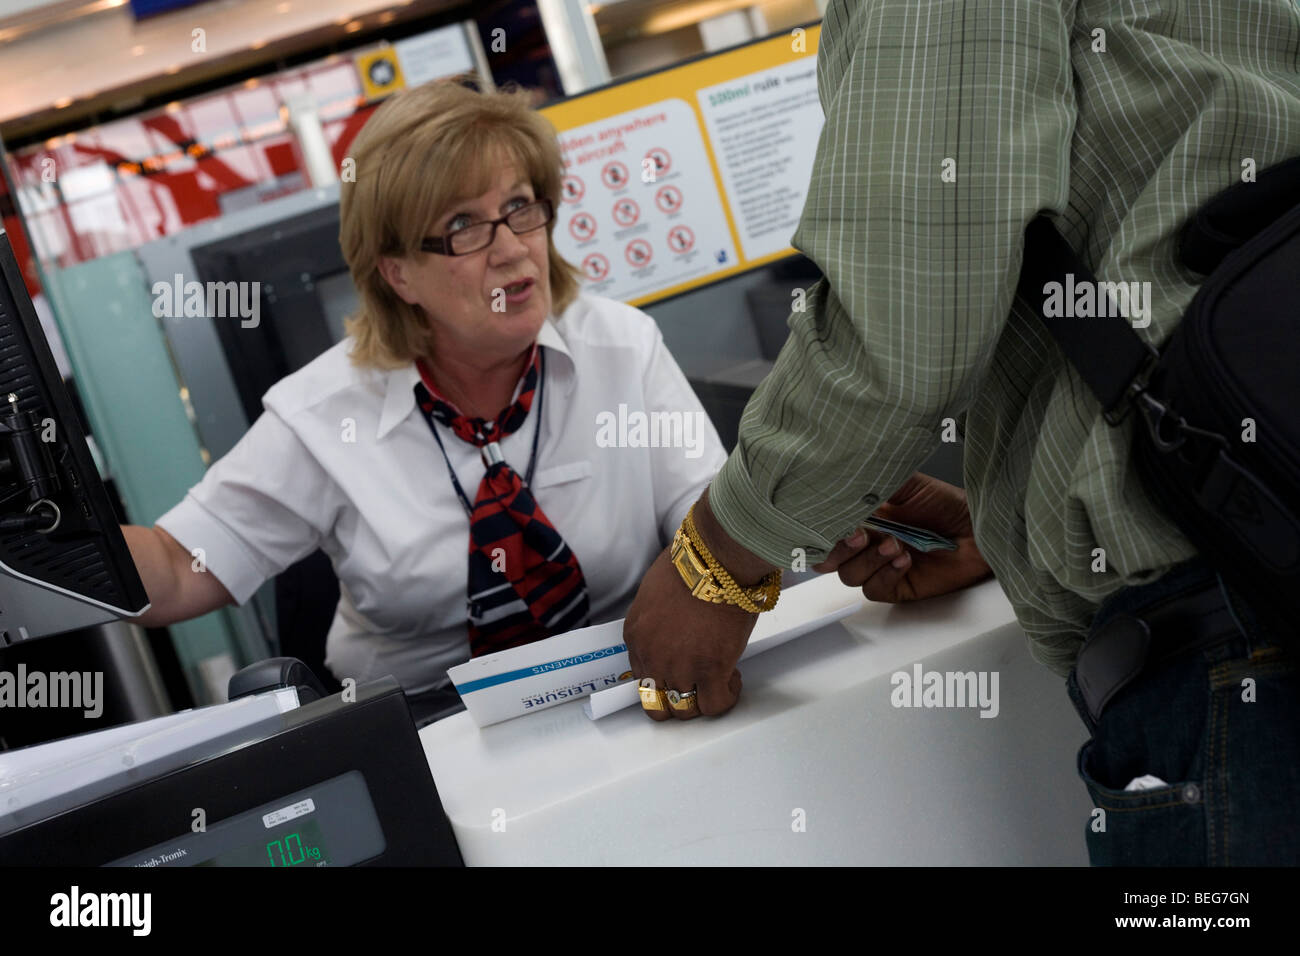 Mature lady employee shows passenger where departures gate is at British Airways check-in at Heathrow Airport's - Stock Image